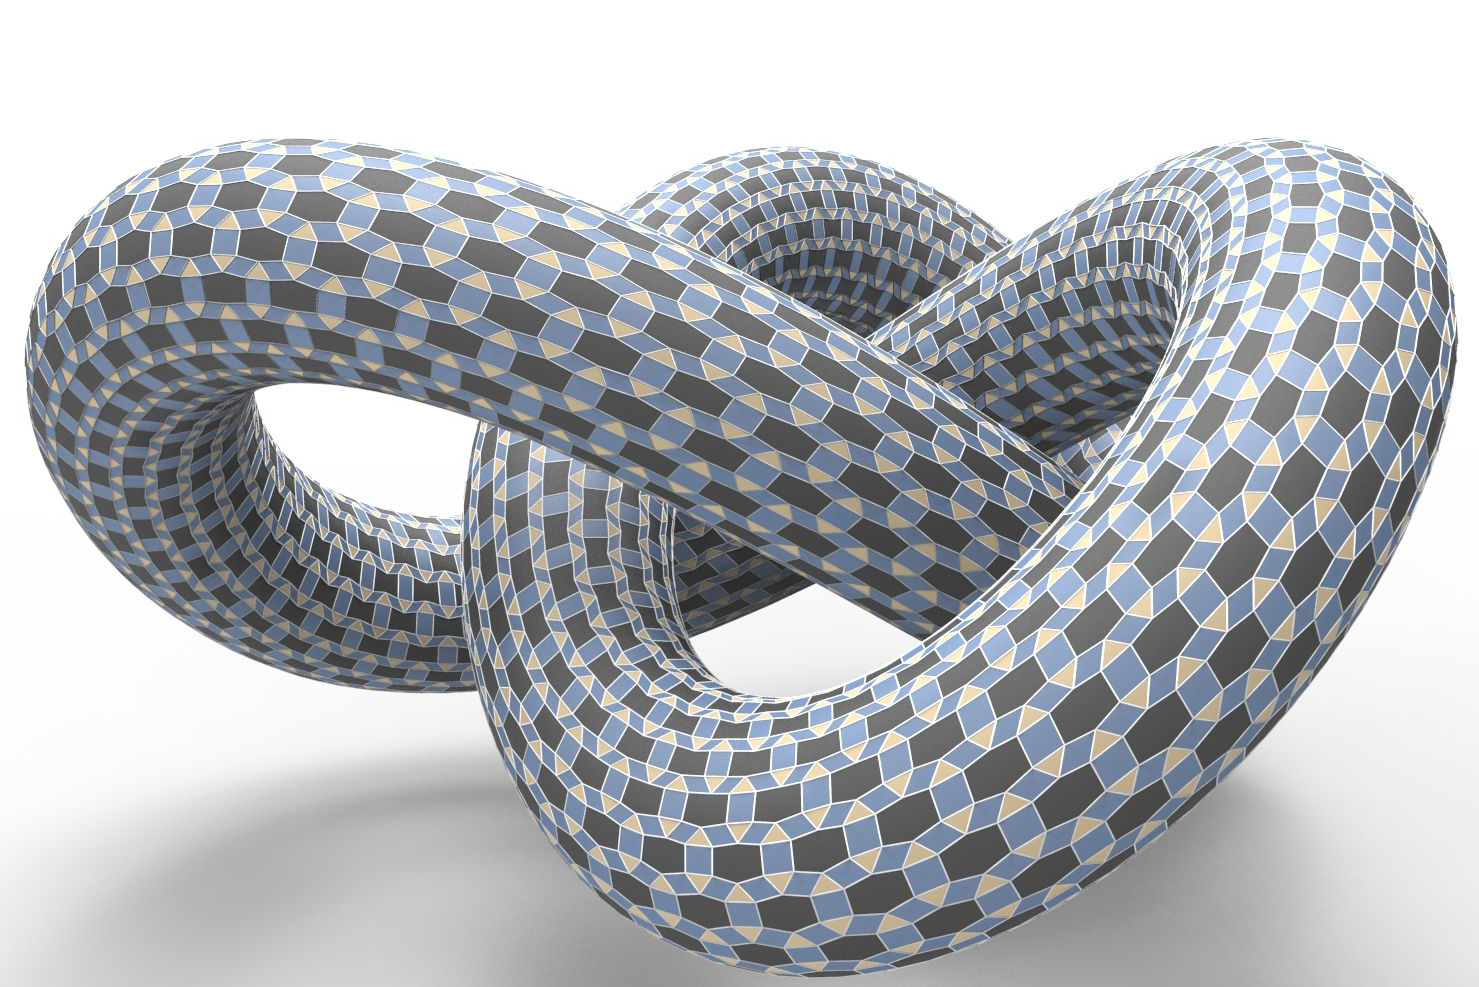 Polyhedral patterns on a knot